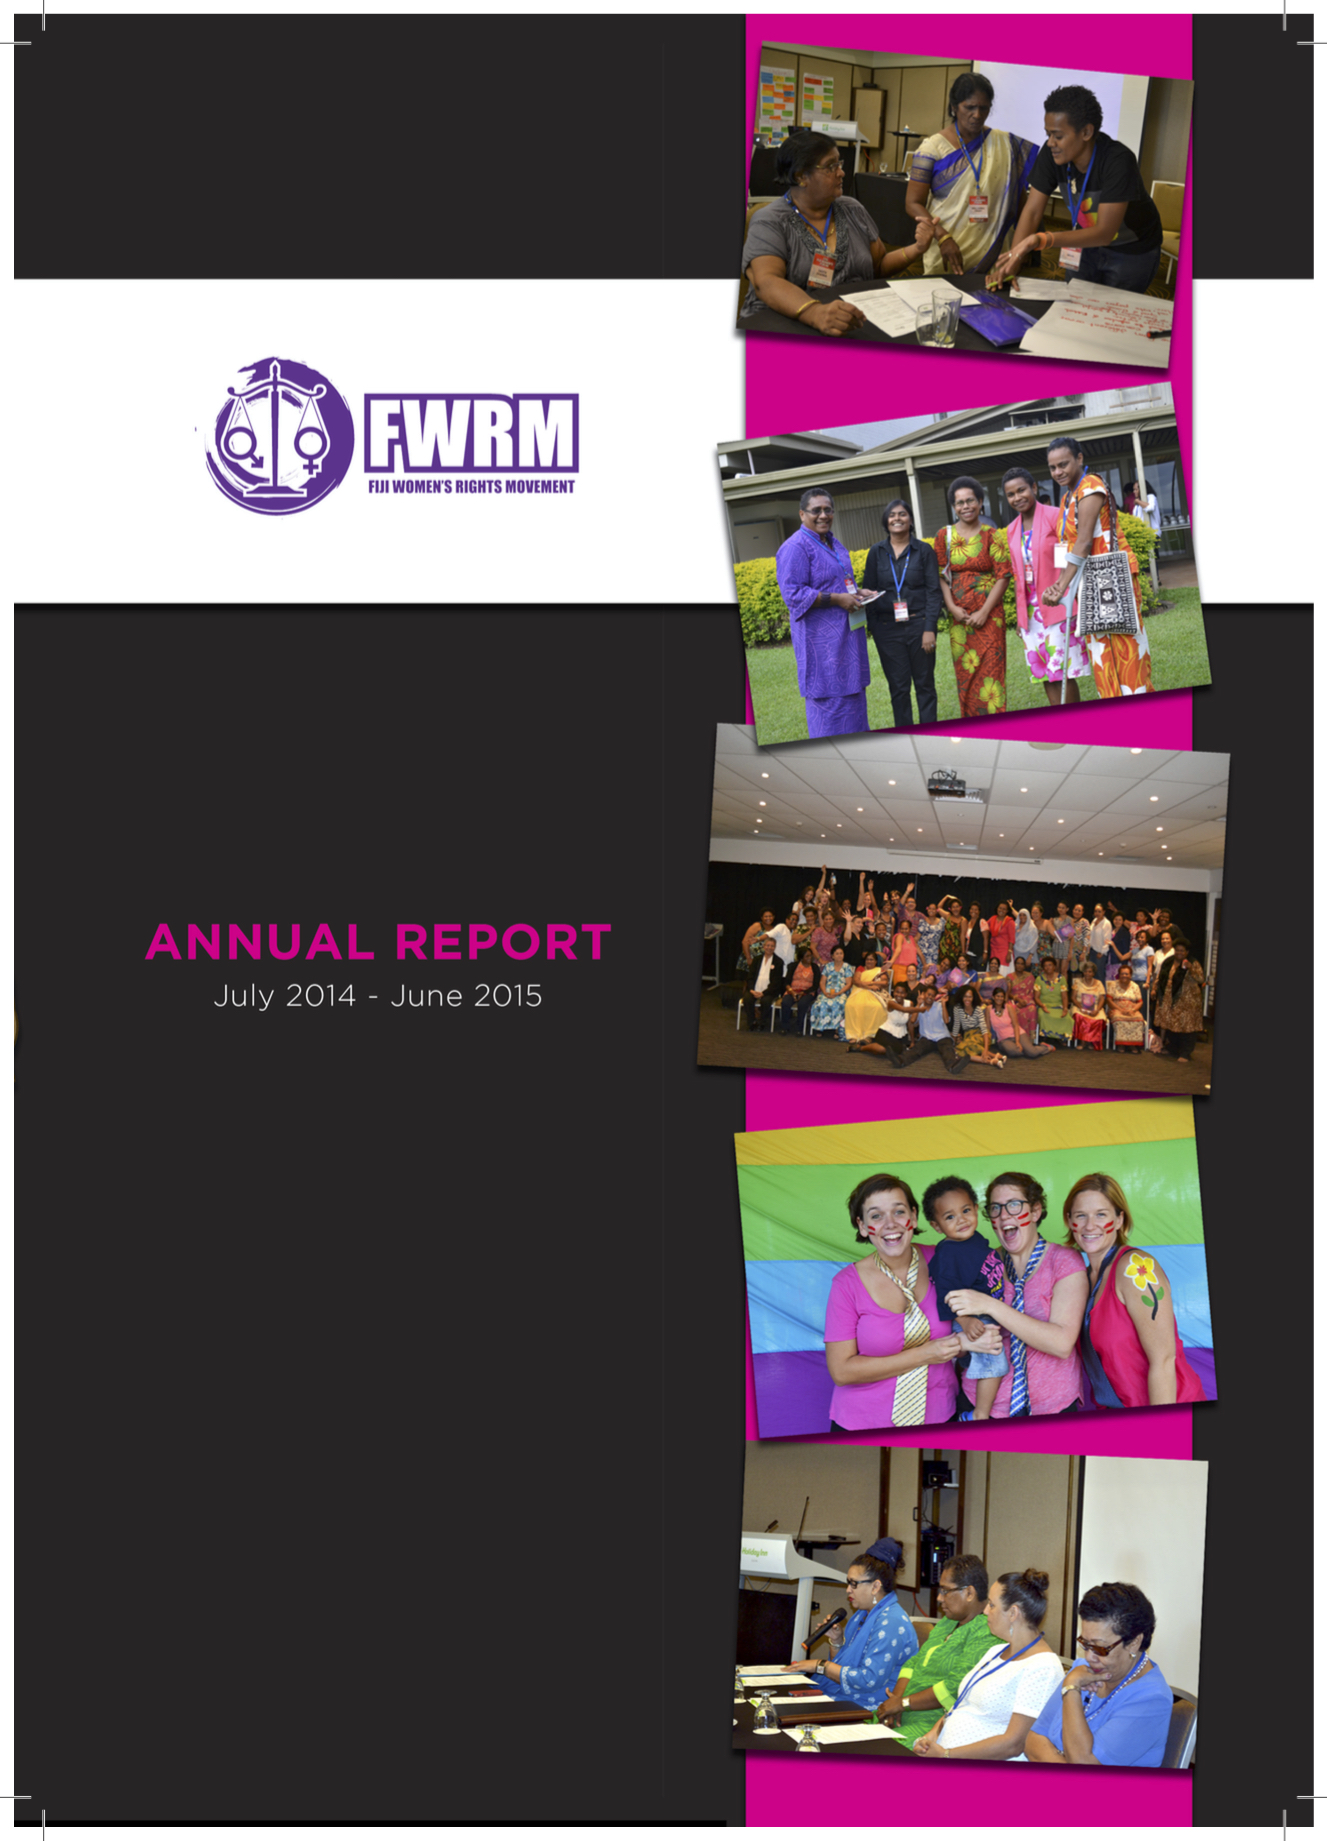 Annual Report July 2014 to June 2015